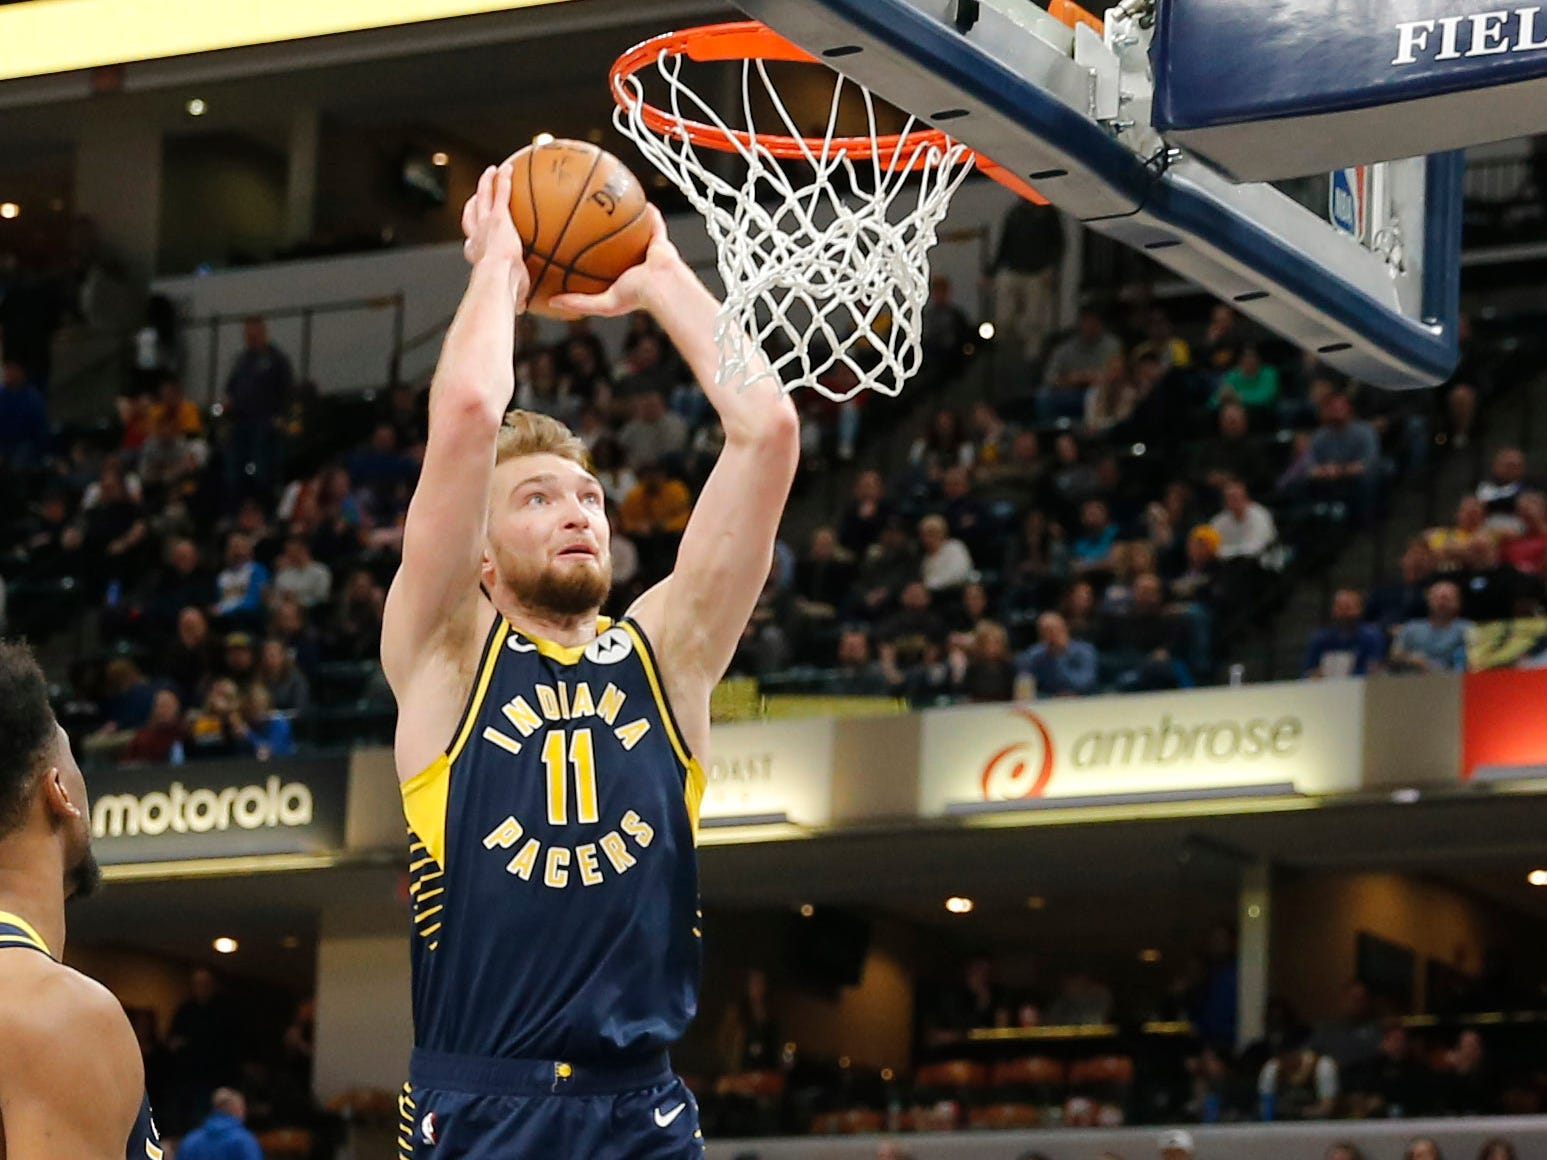 Feb 11, 2019; Indianapolis, IN, USA; Indiana Pacers forward Domantas Sabonis (11) dunks against the Charlotte Hornets during the fourth quarter at Bankers Life Fieldhouse.